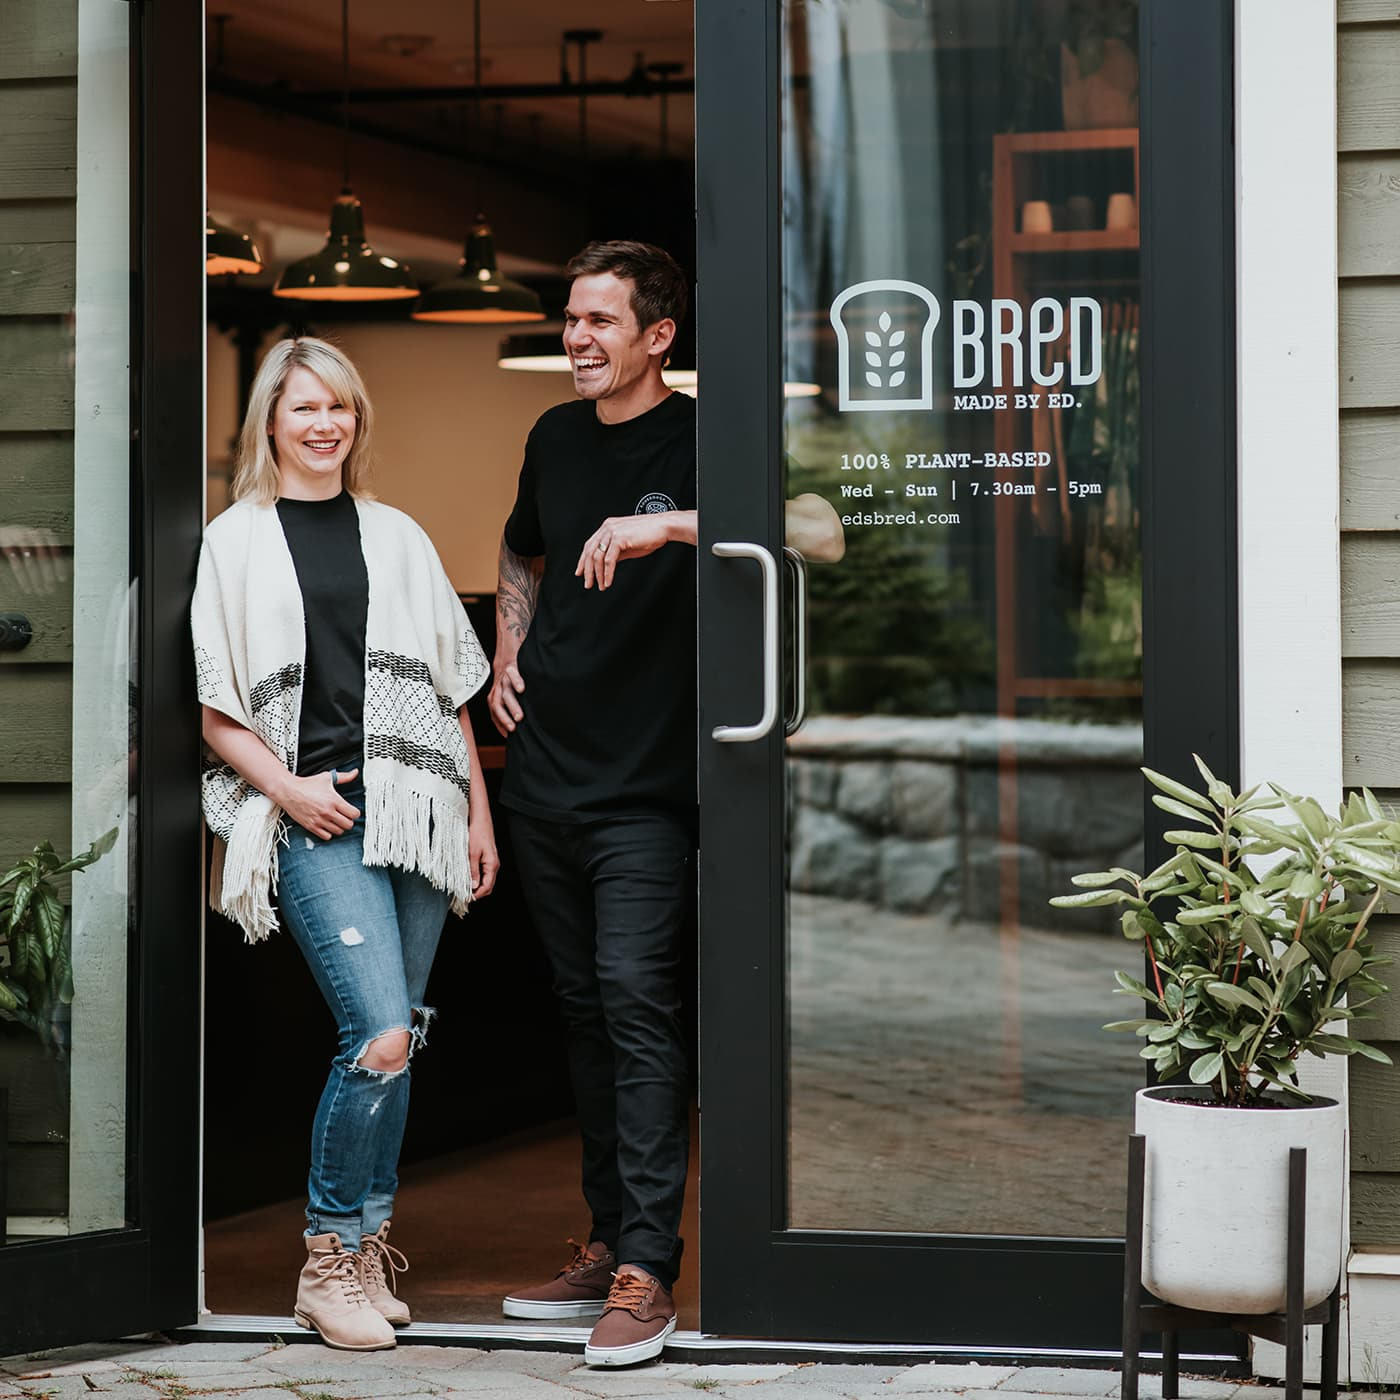 Man and woman standing in the doorway of a bakery